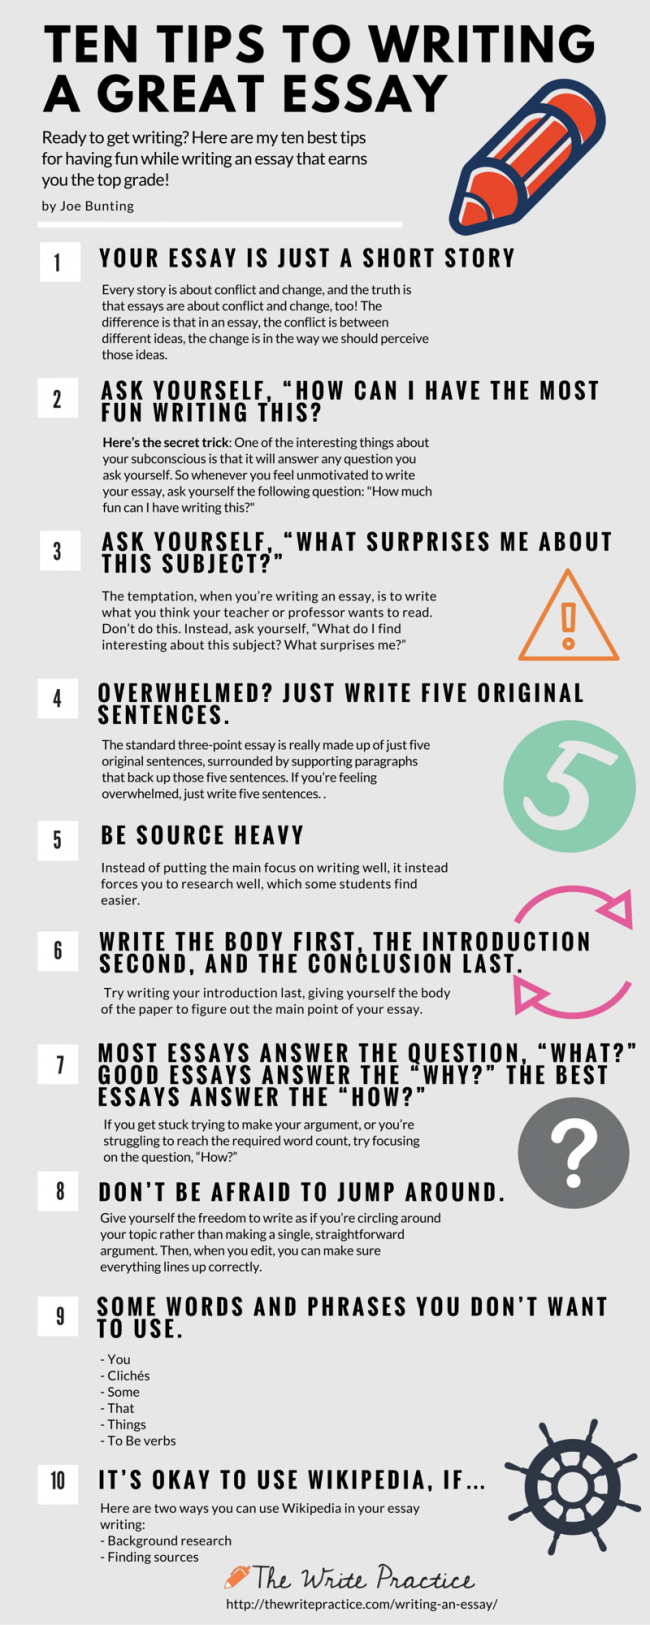 001 Essay Example Tips For Writing An Essay1 650x1625 To Write Marvelous A Good Narrative Persuasive In Exam Full